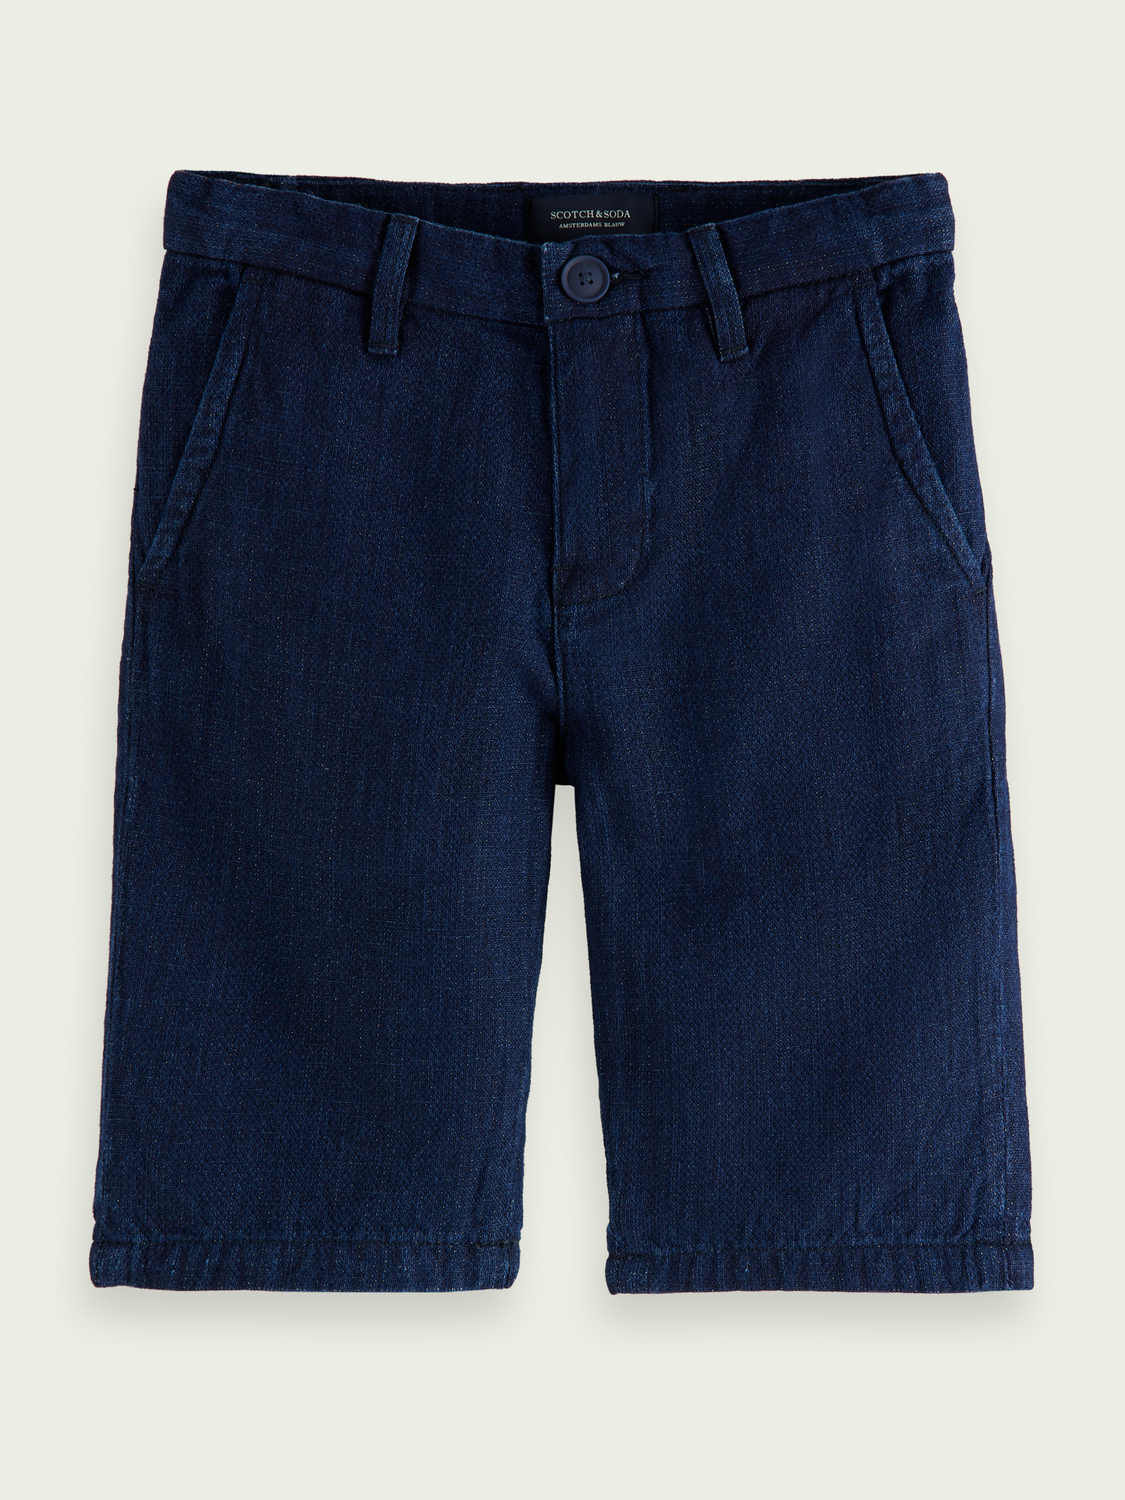 Kids Cotton-linen denim chino shorts